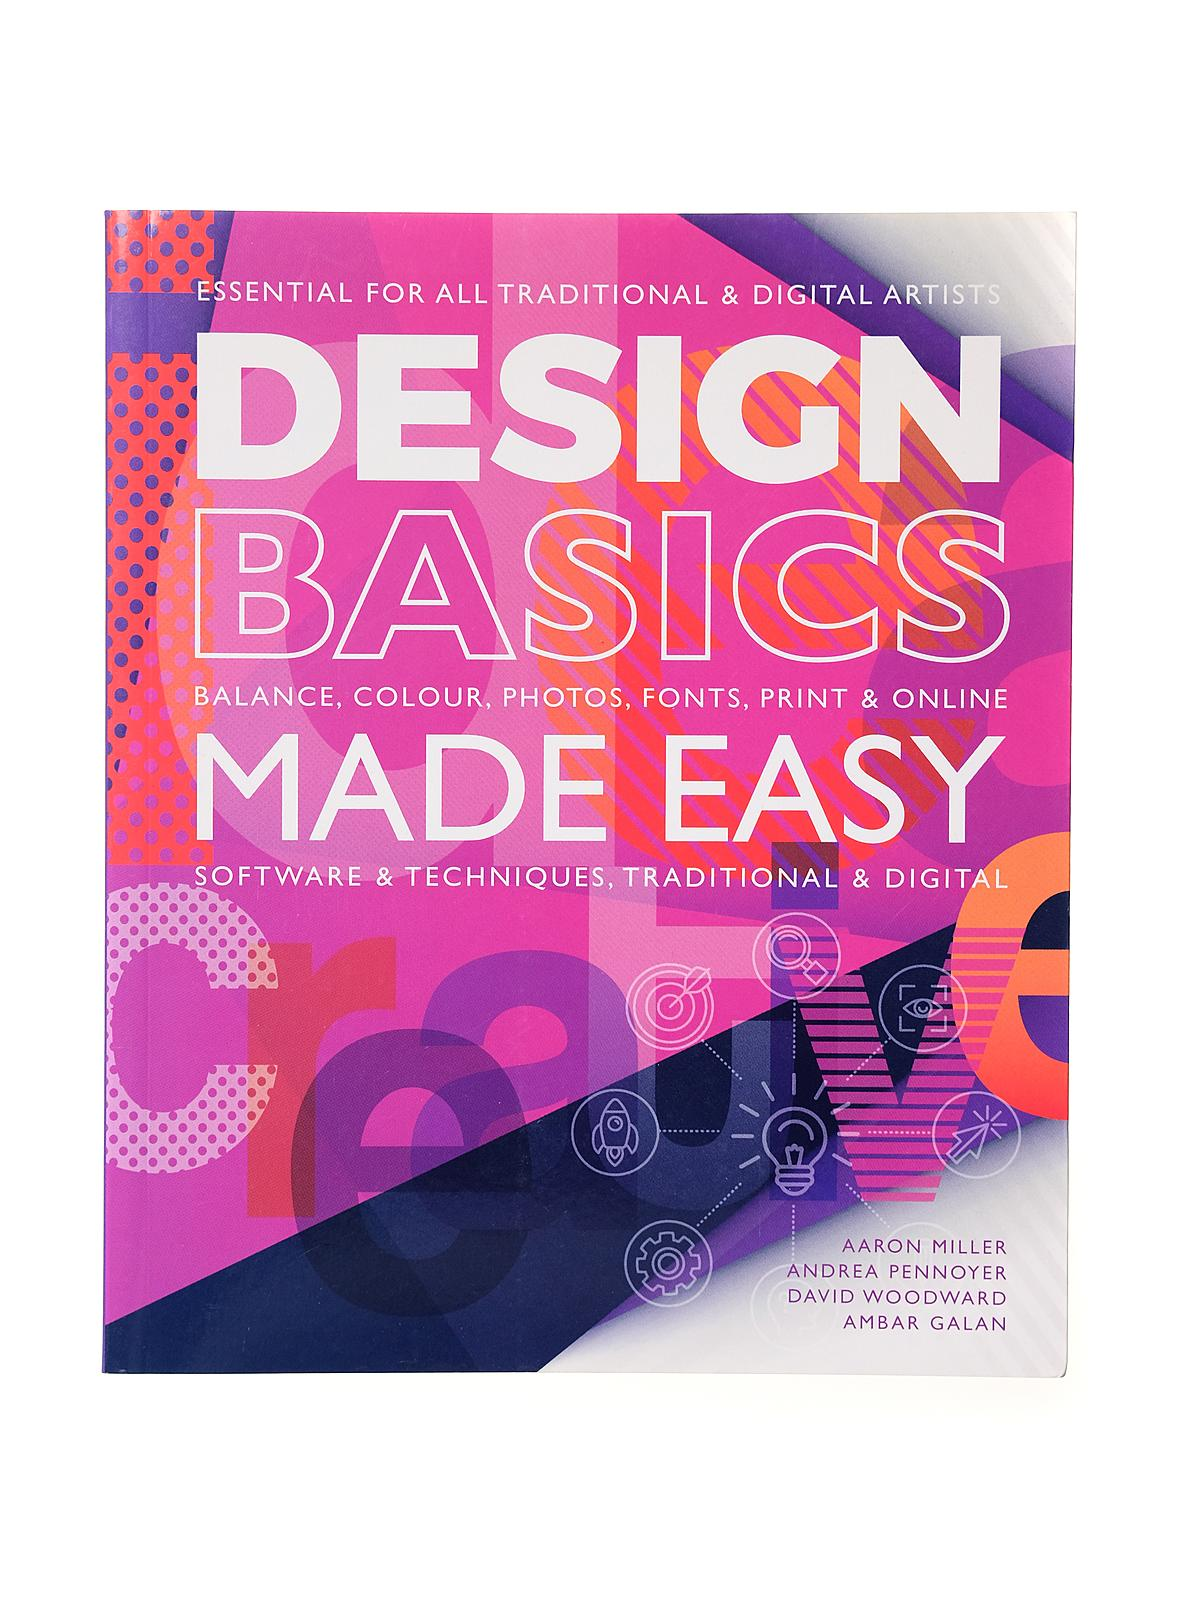 Design Basics Made Easy